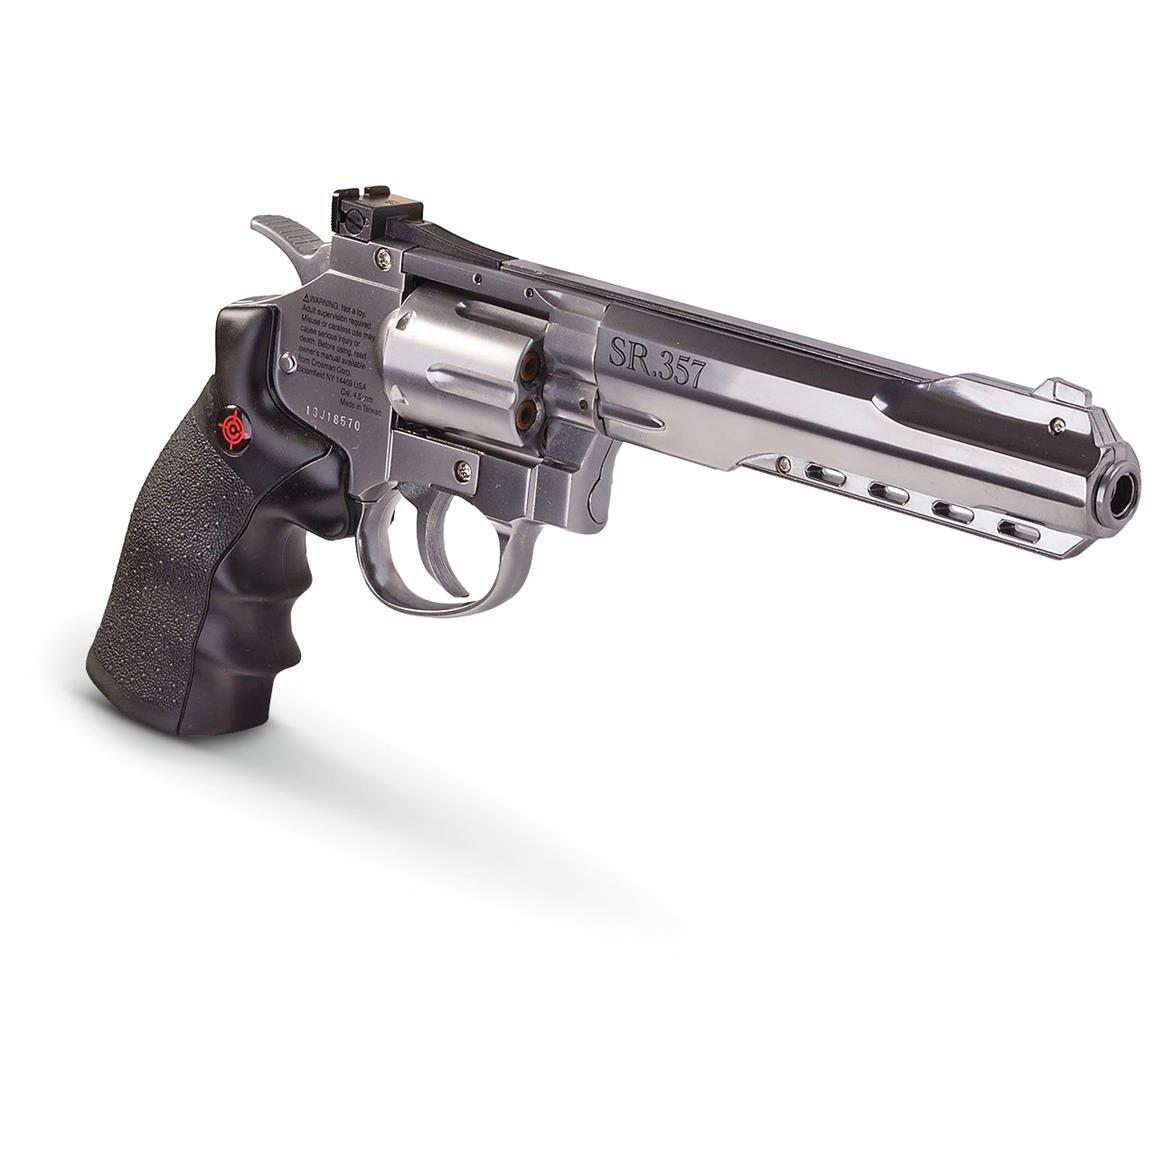 Crosman SR357 CO2 BB Pistol, Silver